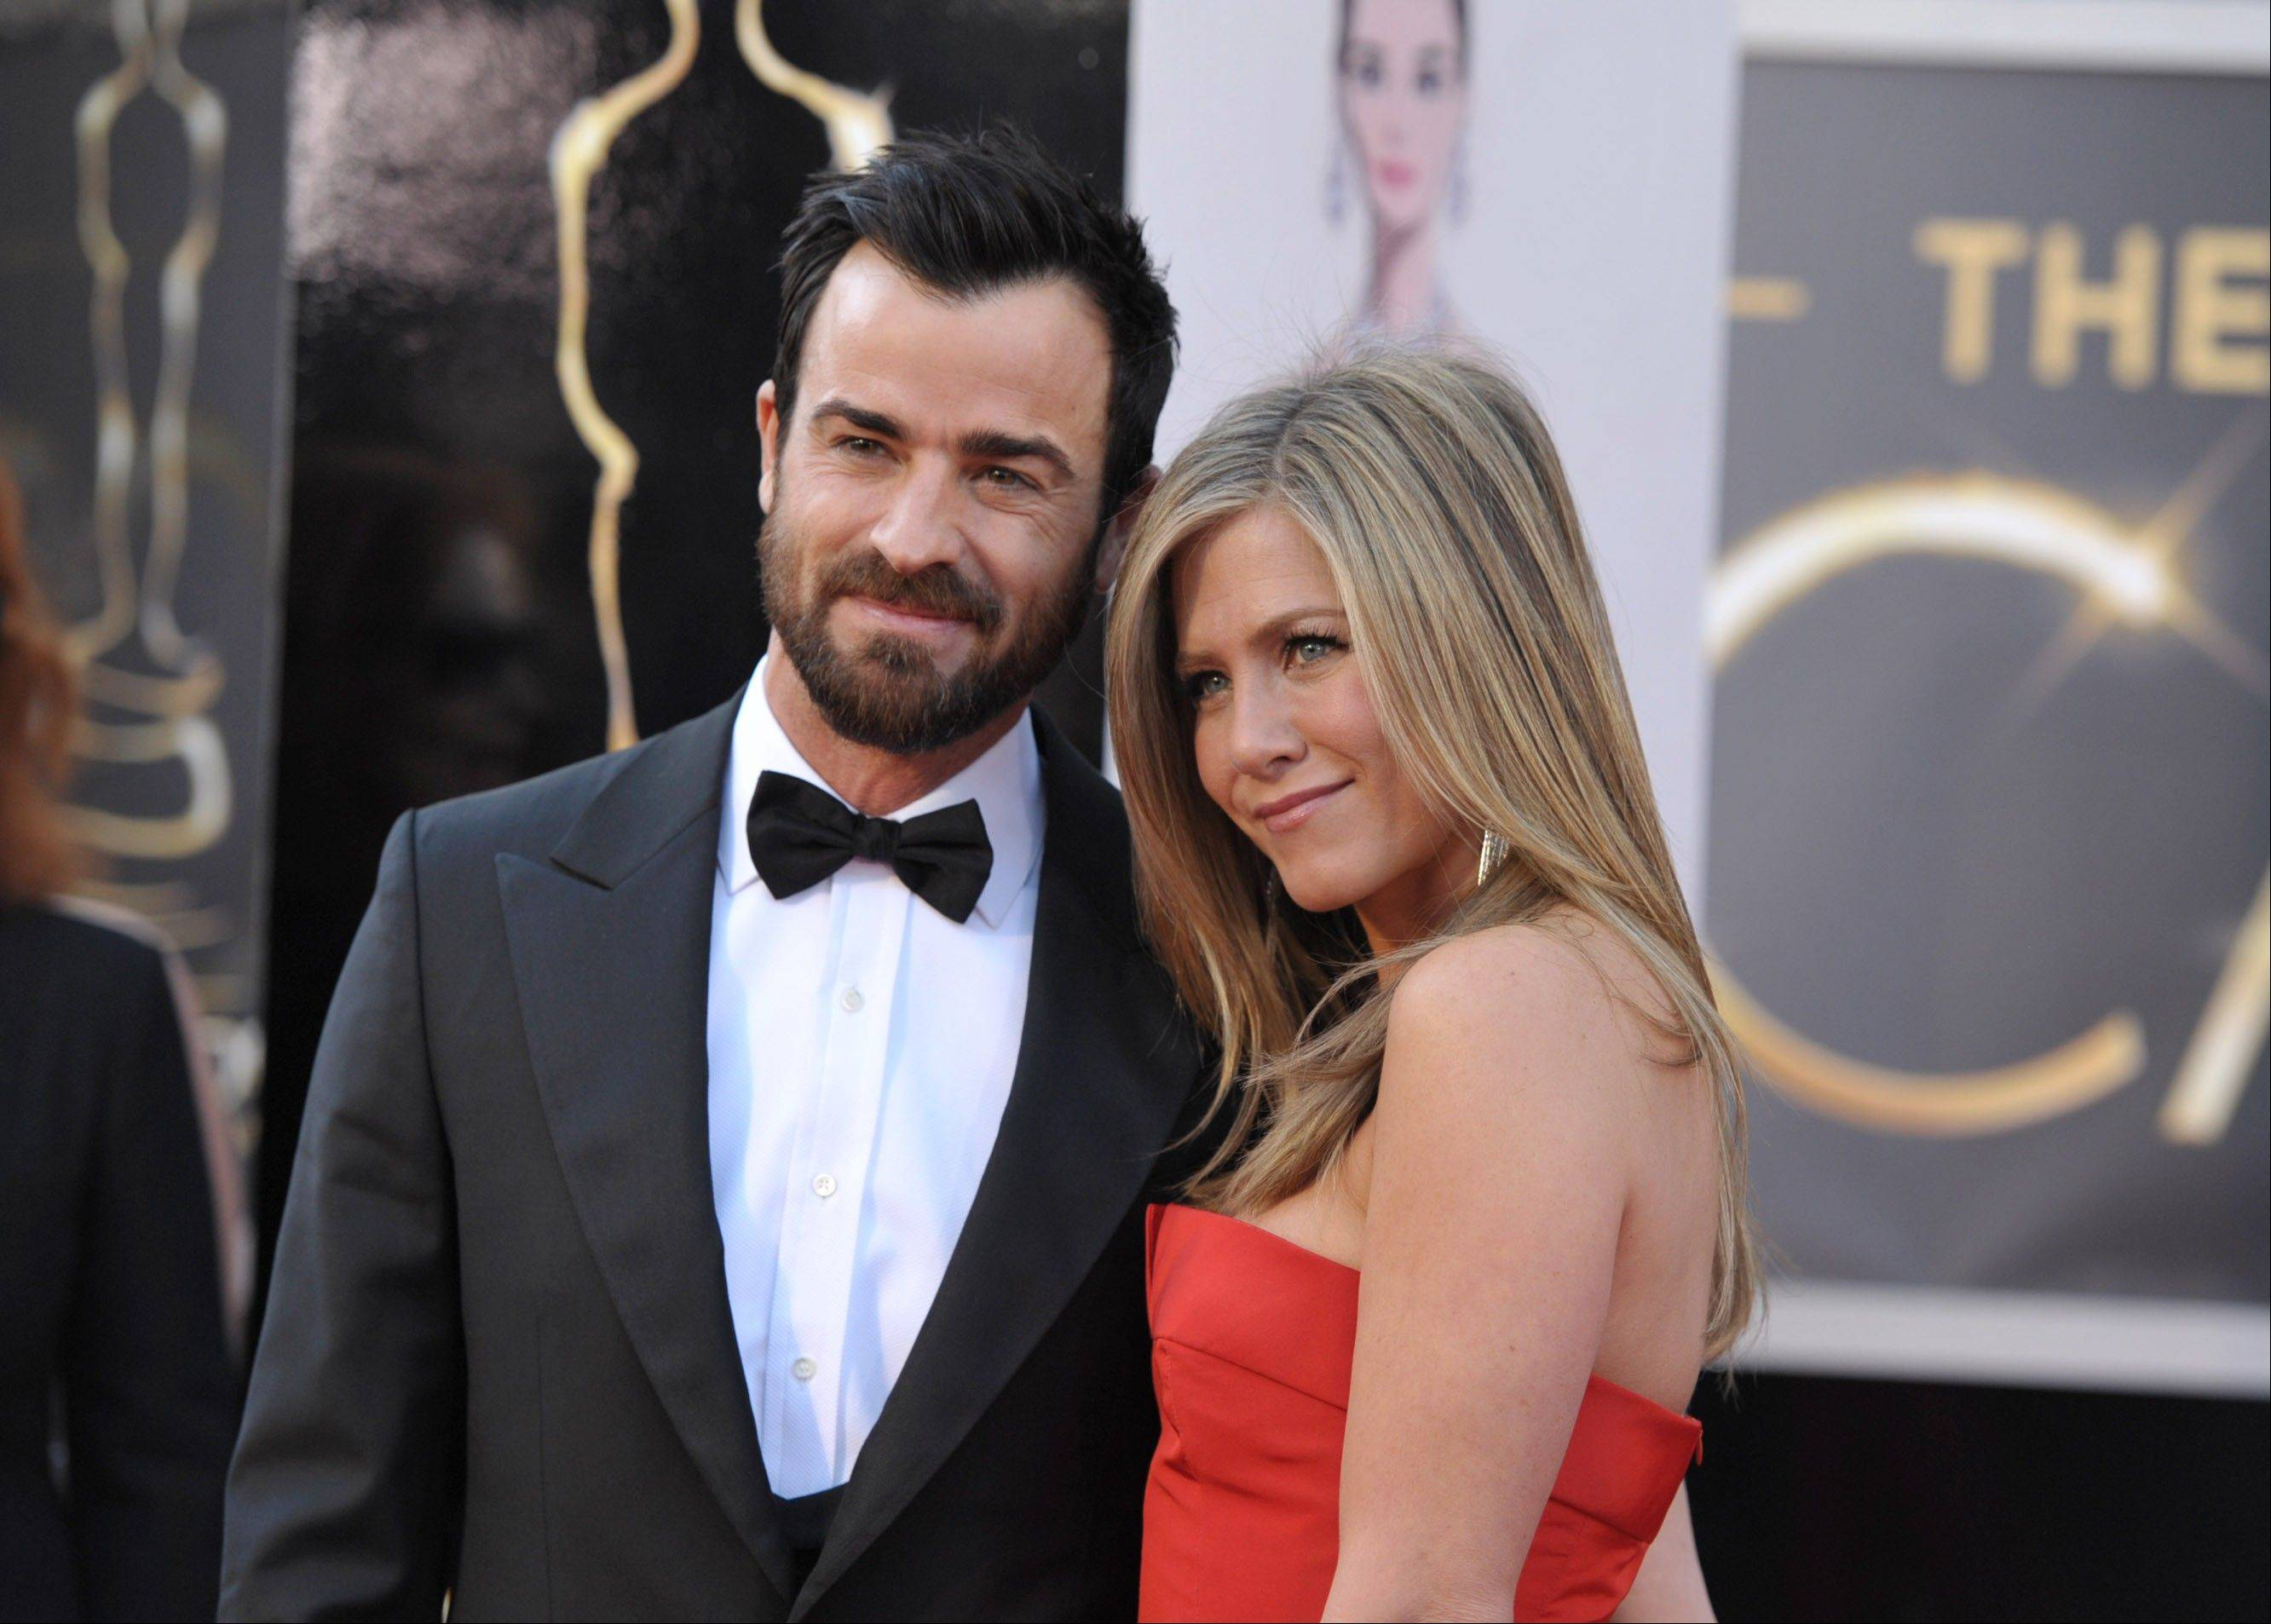 Justin Theroux and Jennifer Aniston arrive at the Oscars at the Dolby Theatre on Sunday in Los Angeles.